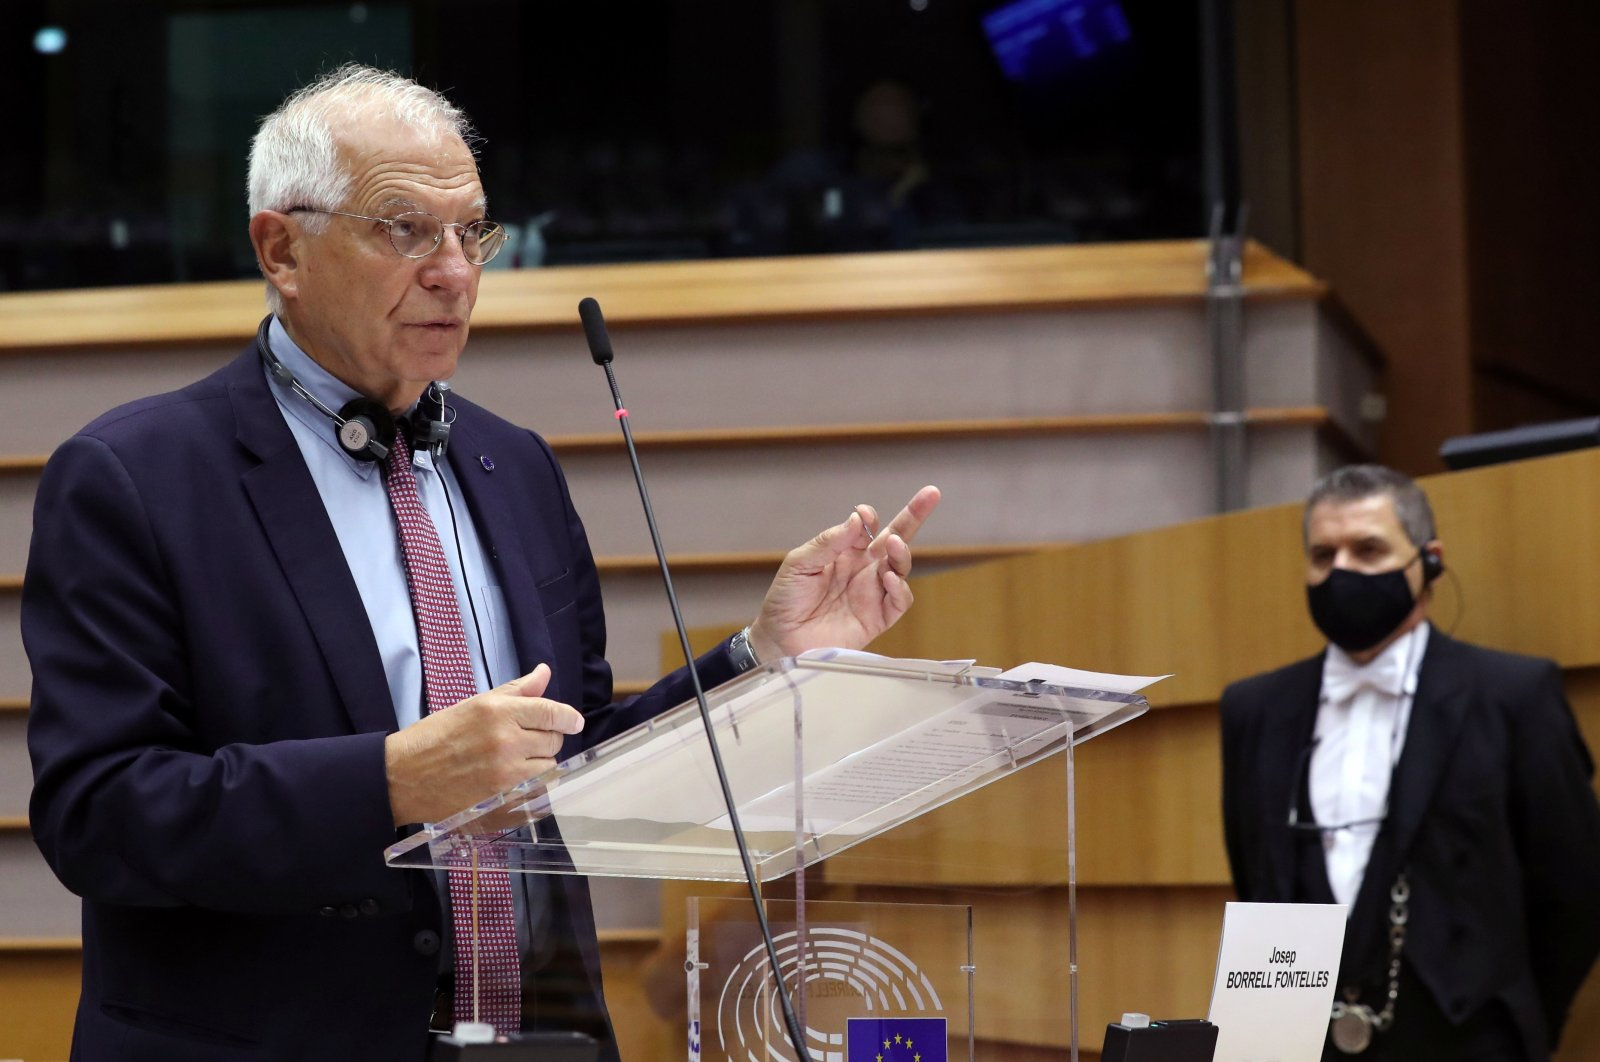 EU foreign policy chief Josep Borrell attends a plenary session of the European Parliament in Brussels, Belgium on Oct. 7, 2020. (Reuters Photo)